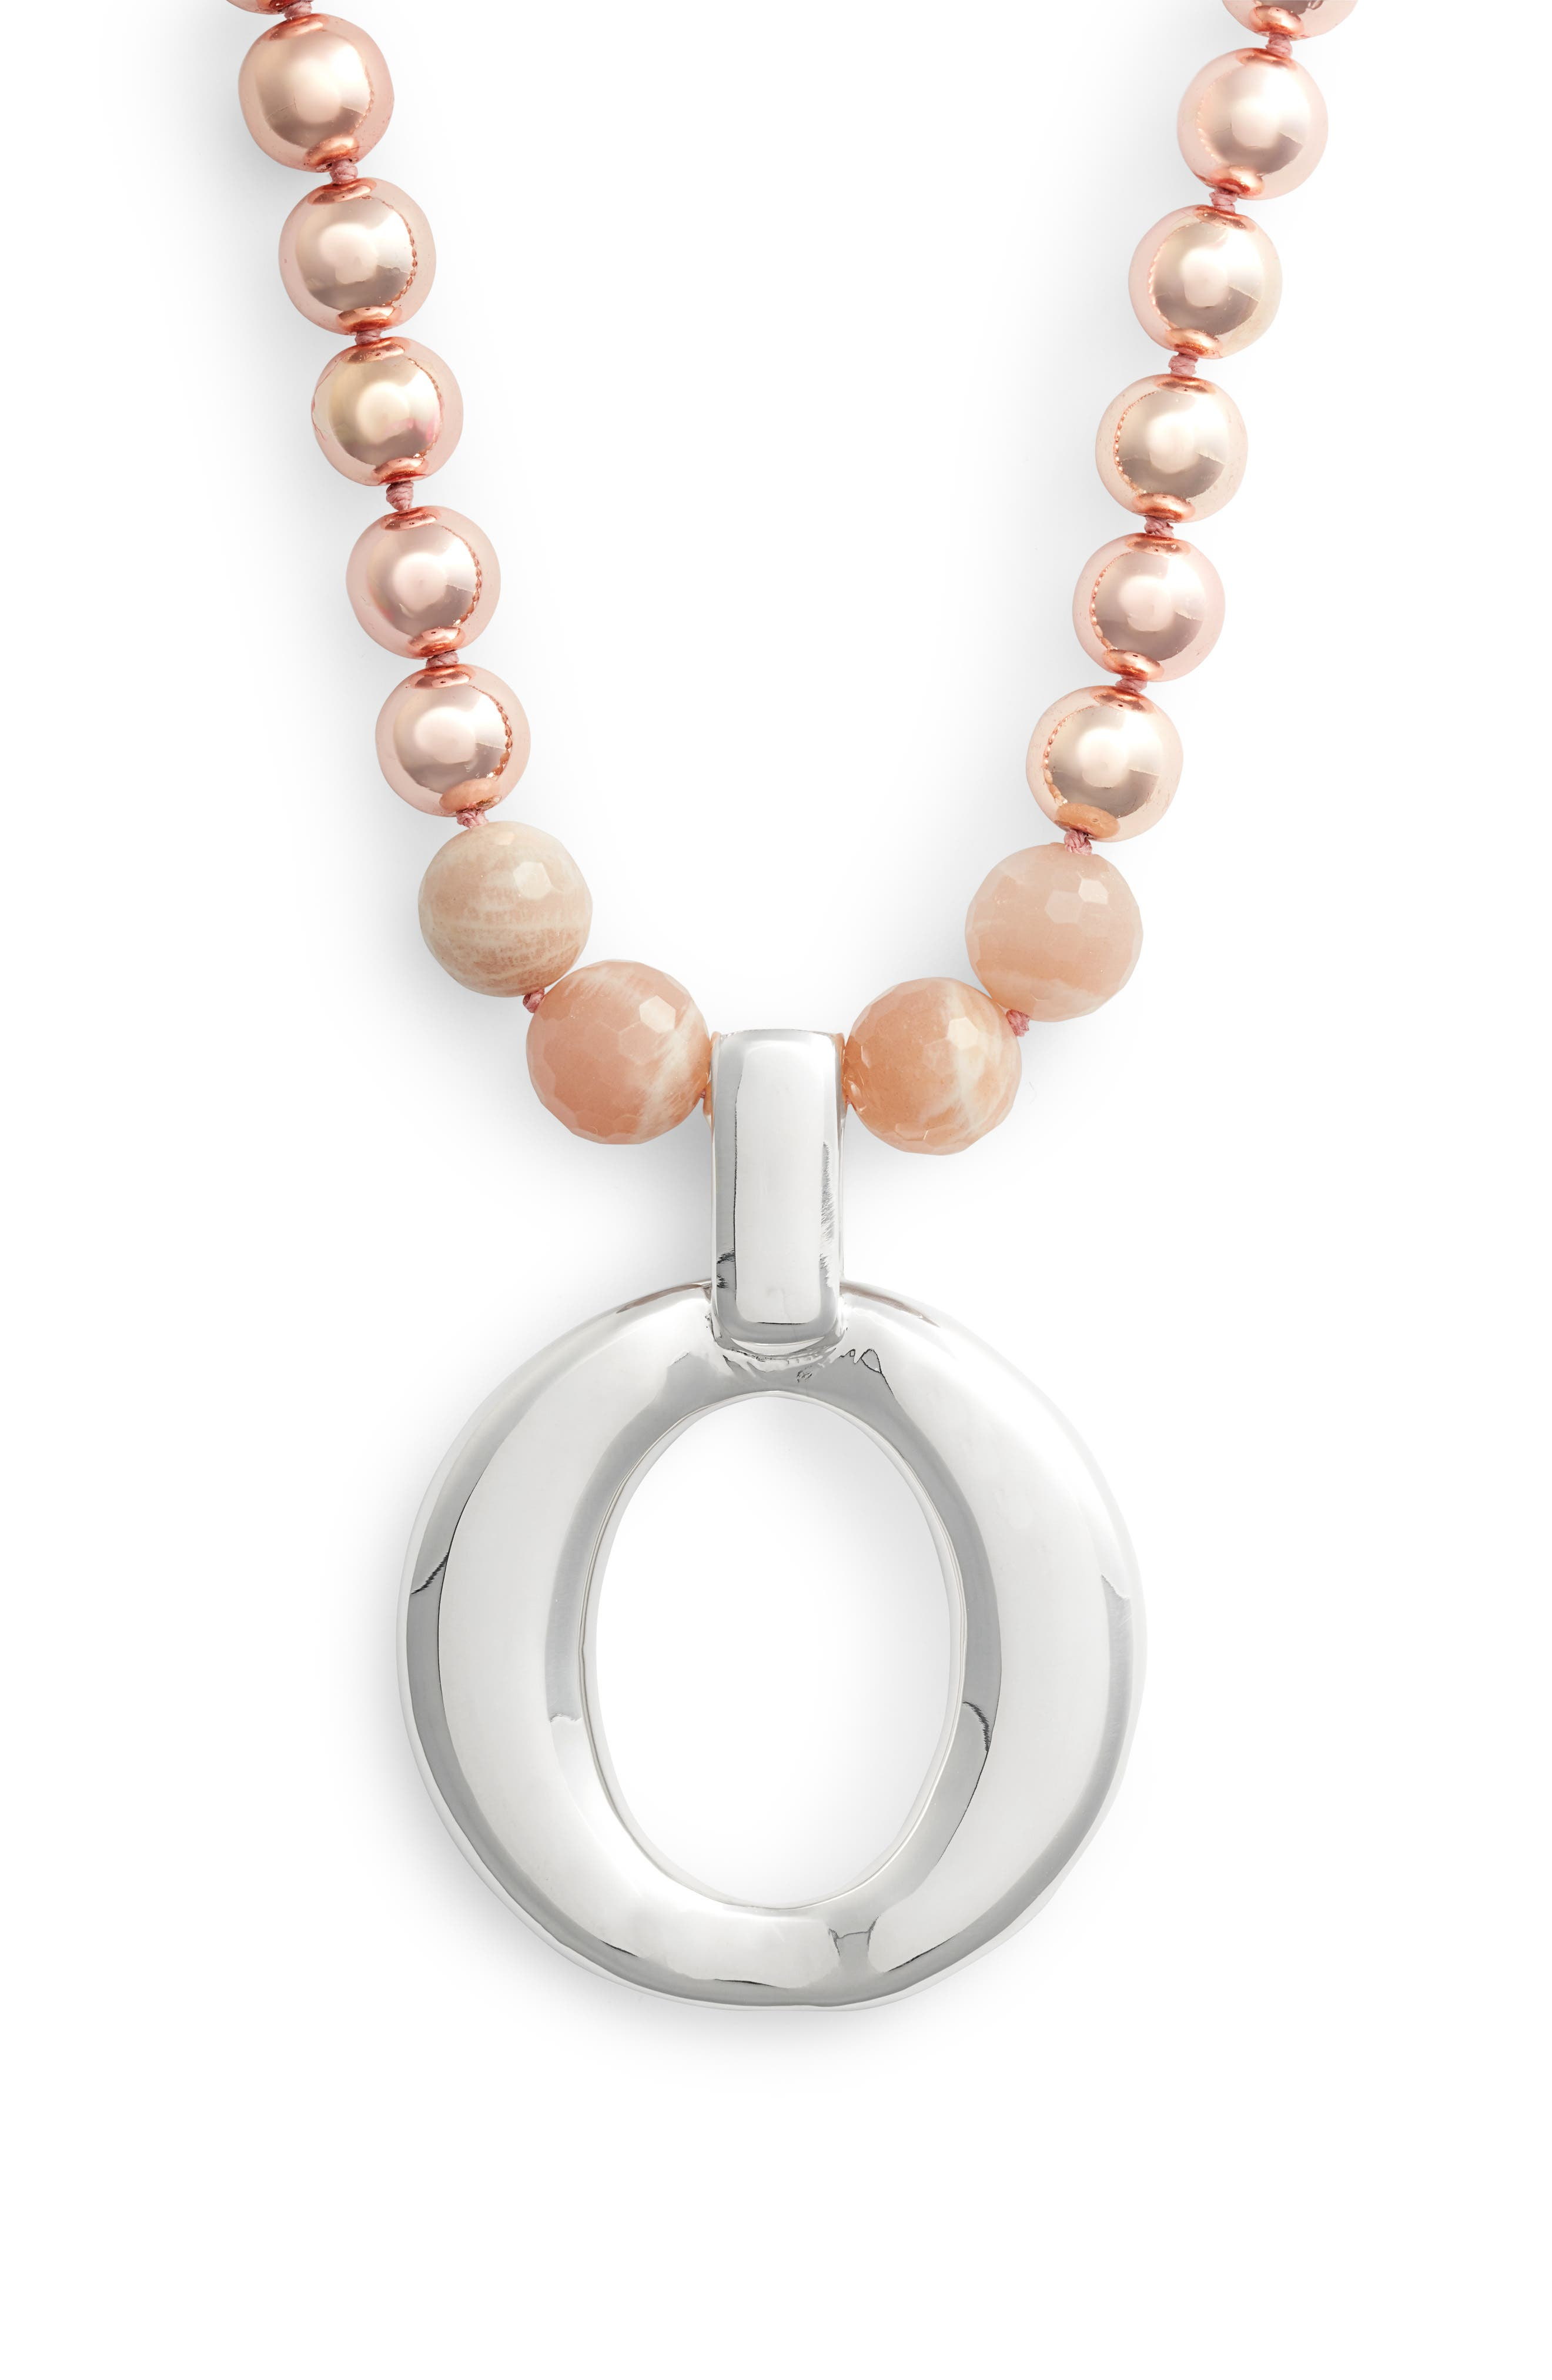 Hematite & Moonstone Necklace,                             Main thumbnail 1, color,                             Pink/ Silver